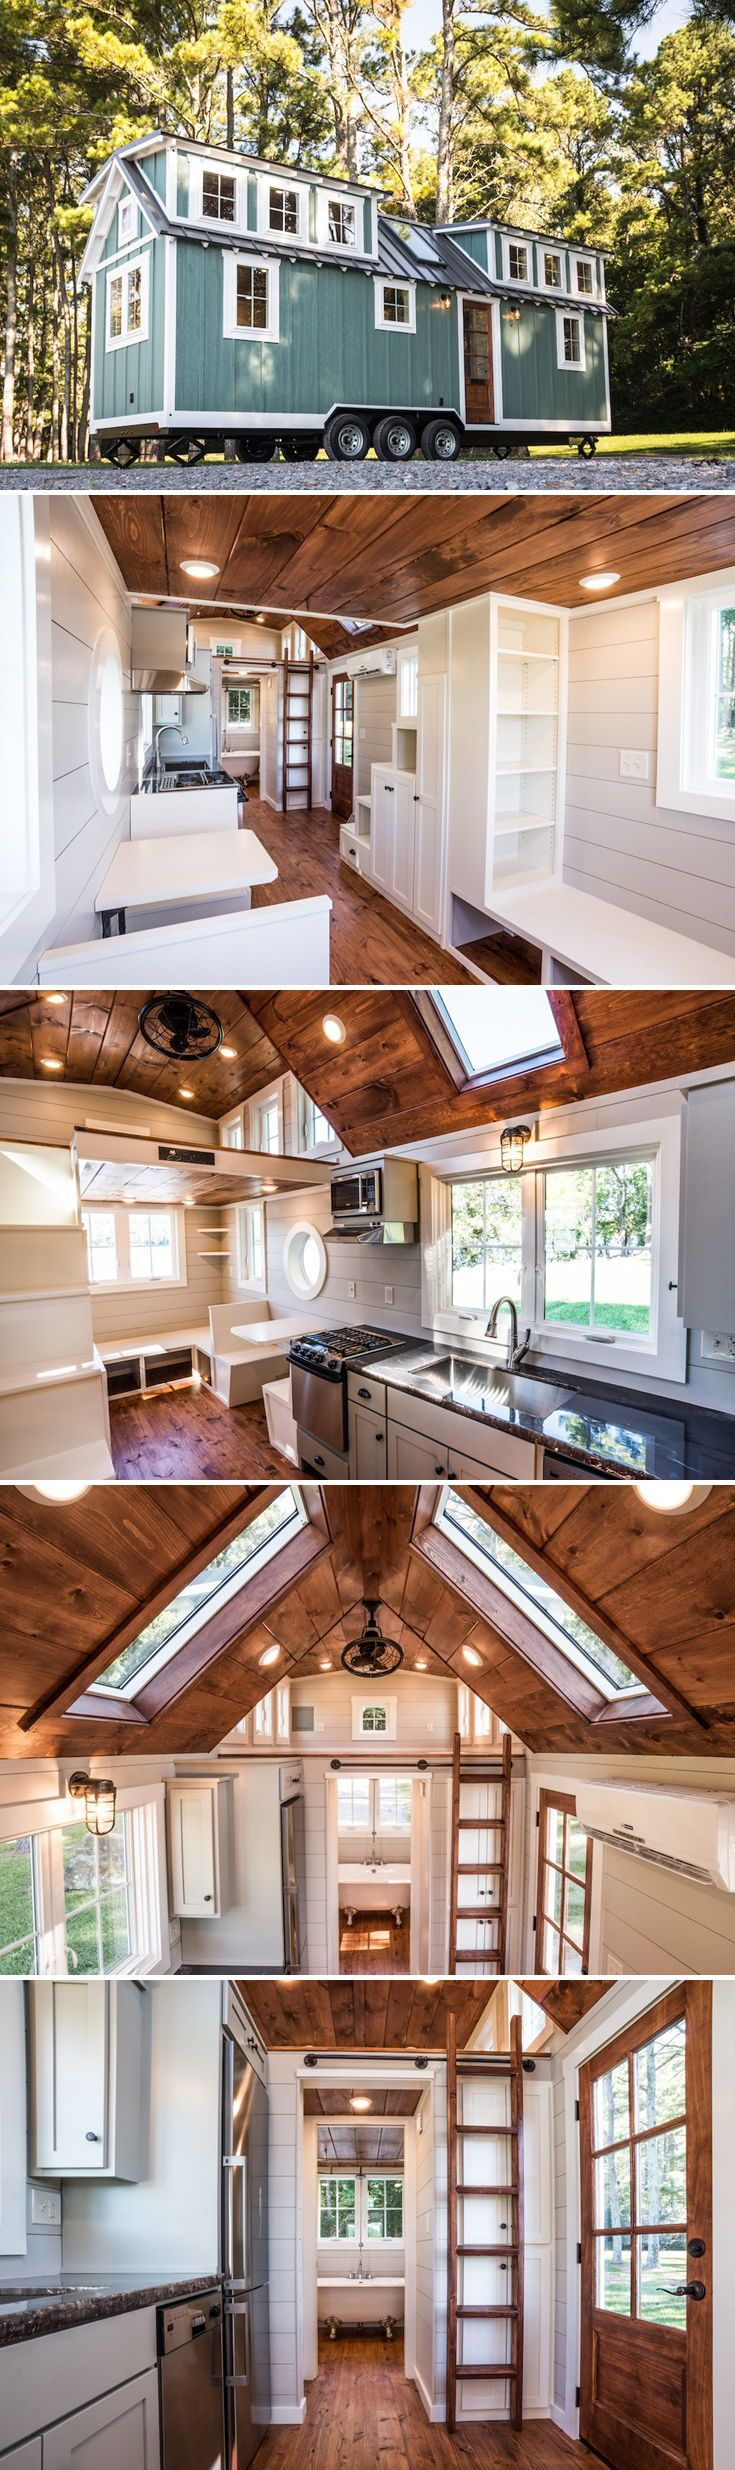 Ridgewood by Timbercraft Tiny Homes #tinyhome